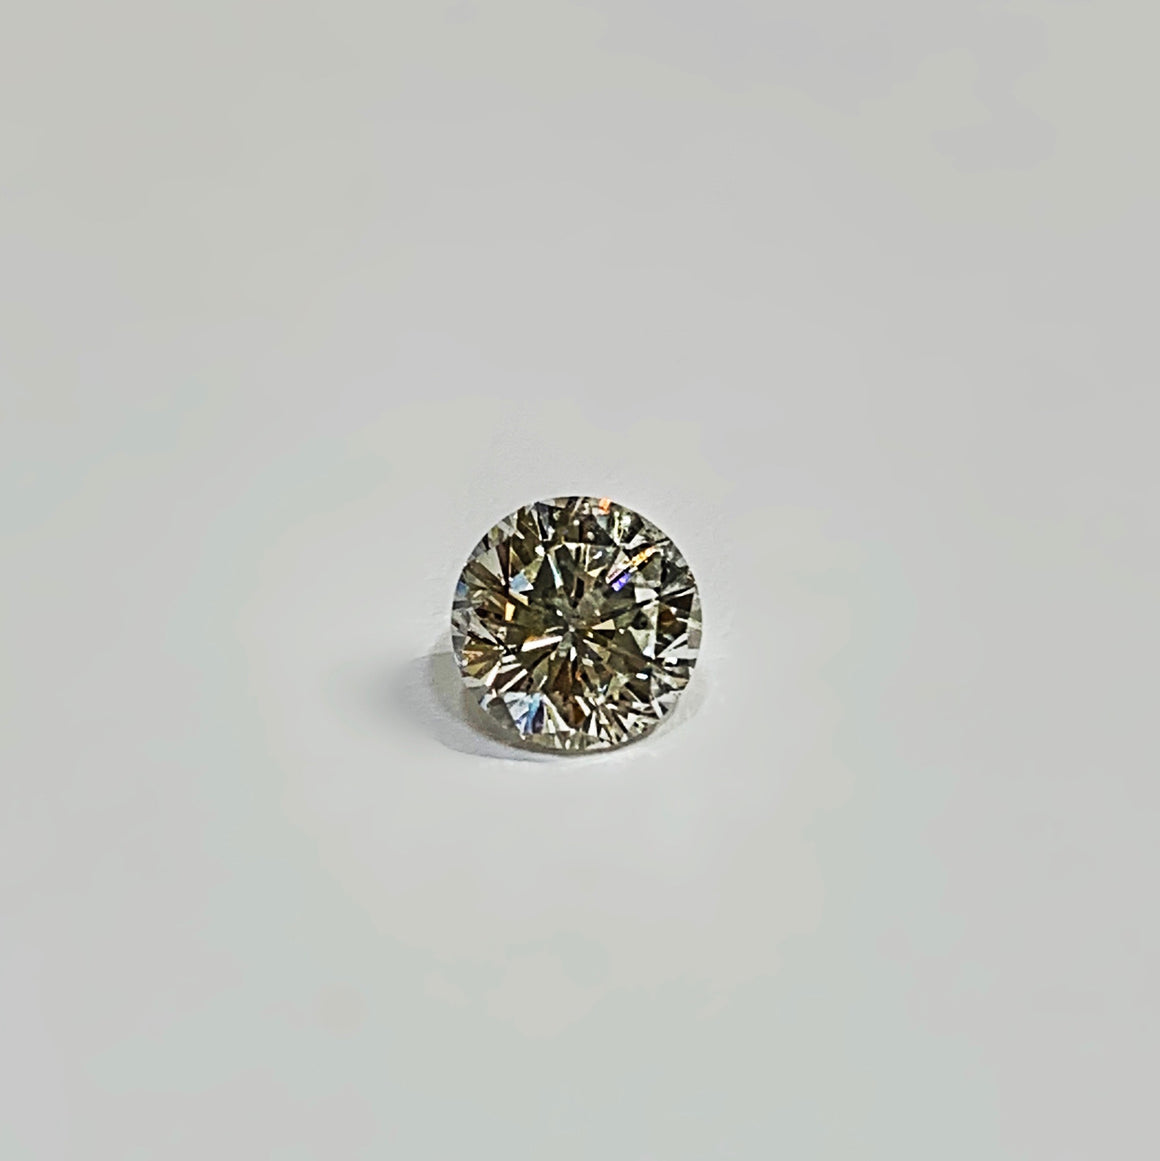 2.01 Carat Round Brilliant, F Color Clarity Enhanced Diamond - Talisman Collection Fine Jewelers